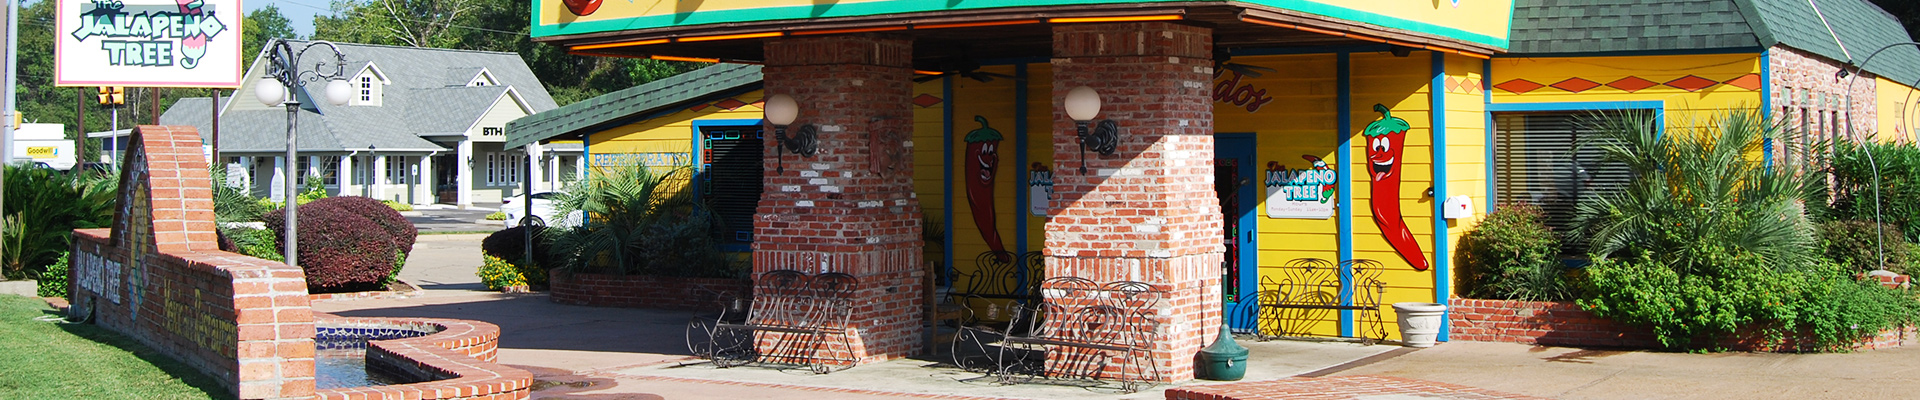 Exterior look of The Jalapeno Tree Mexican restaurant in Carthage